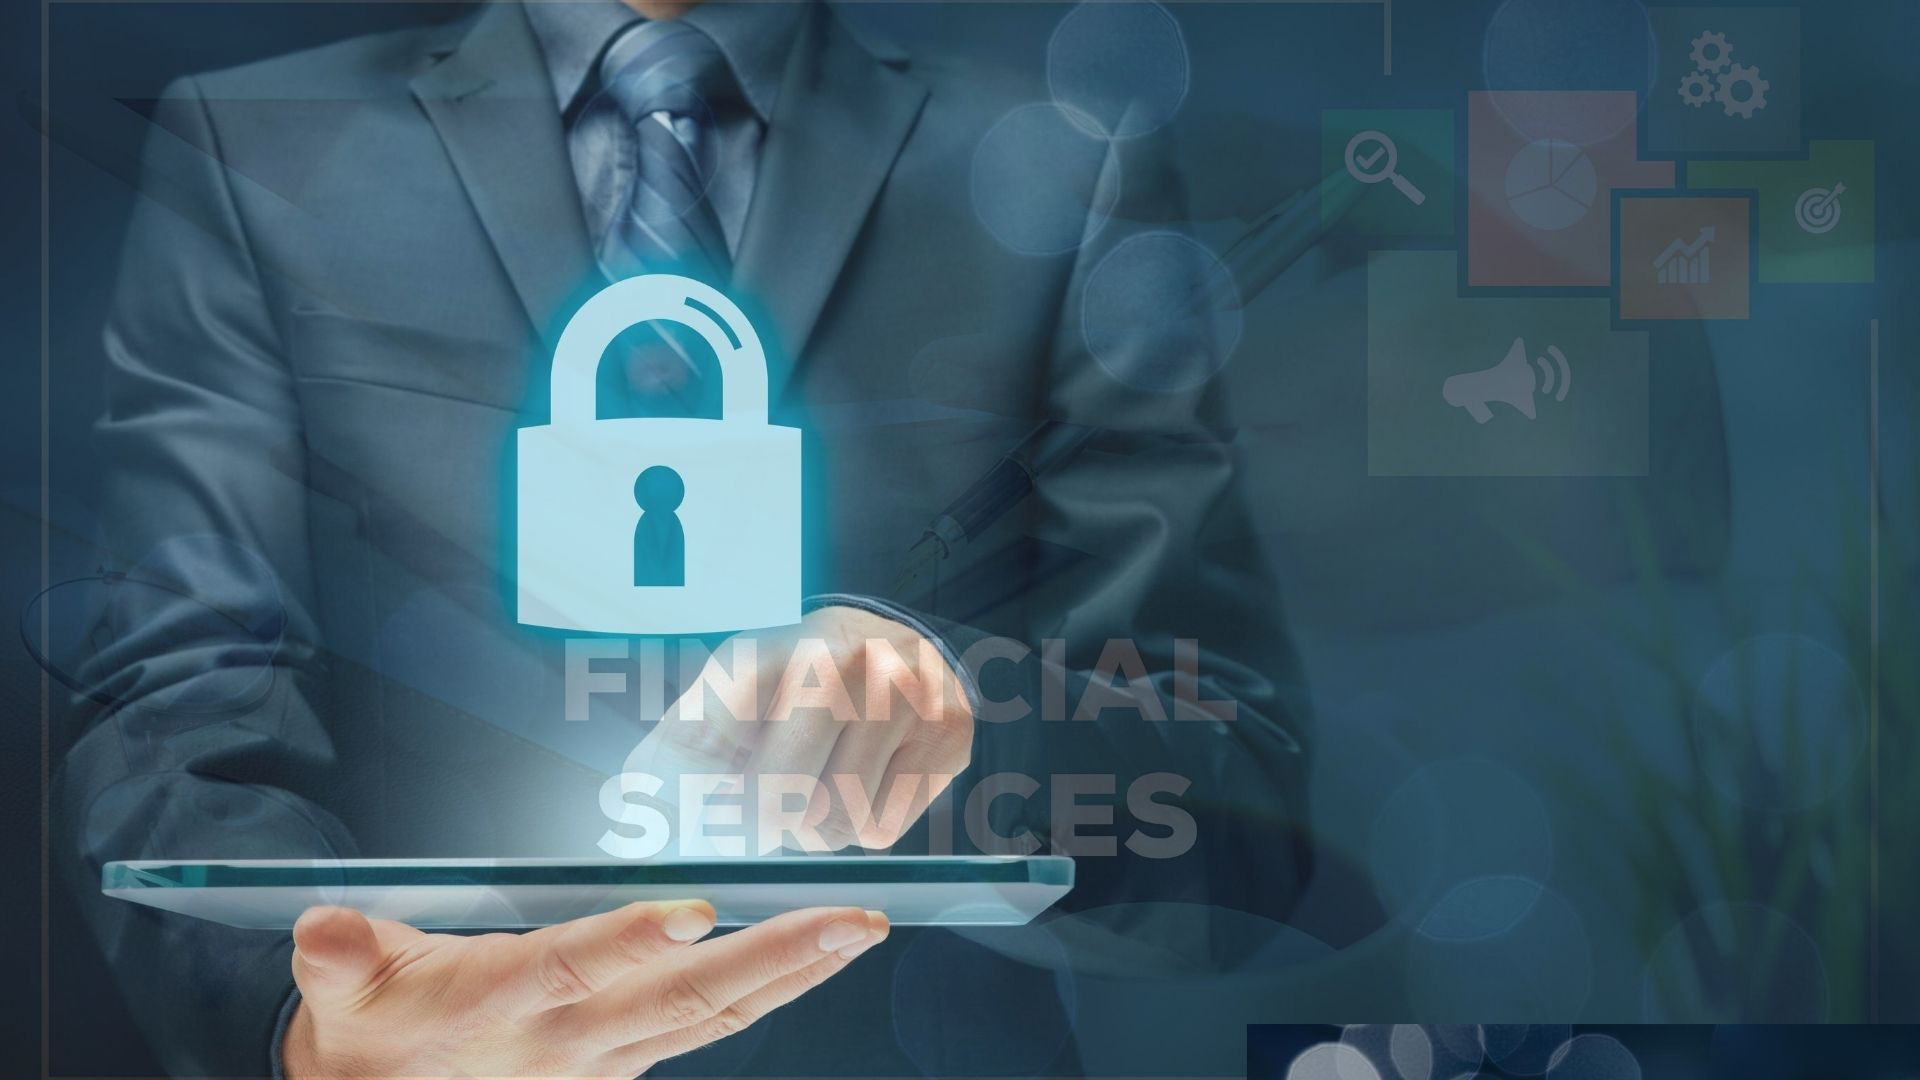 Addressing the Key Financial Services Cybersecurity Challenges in Today's Economy 1